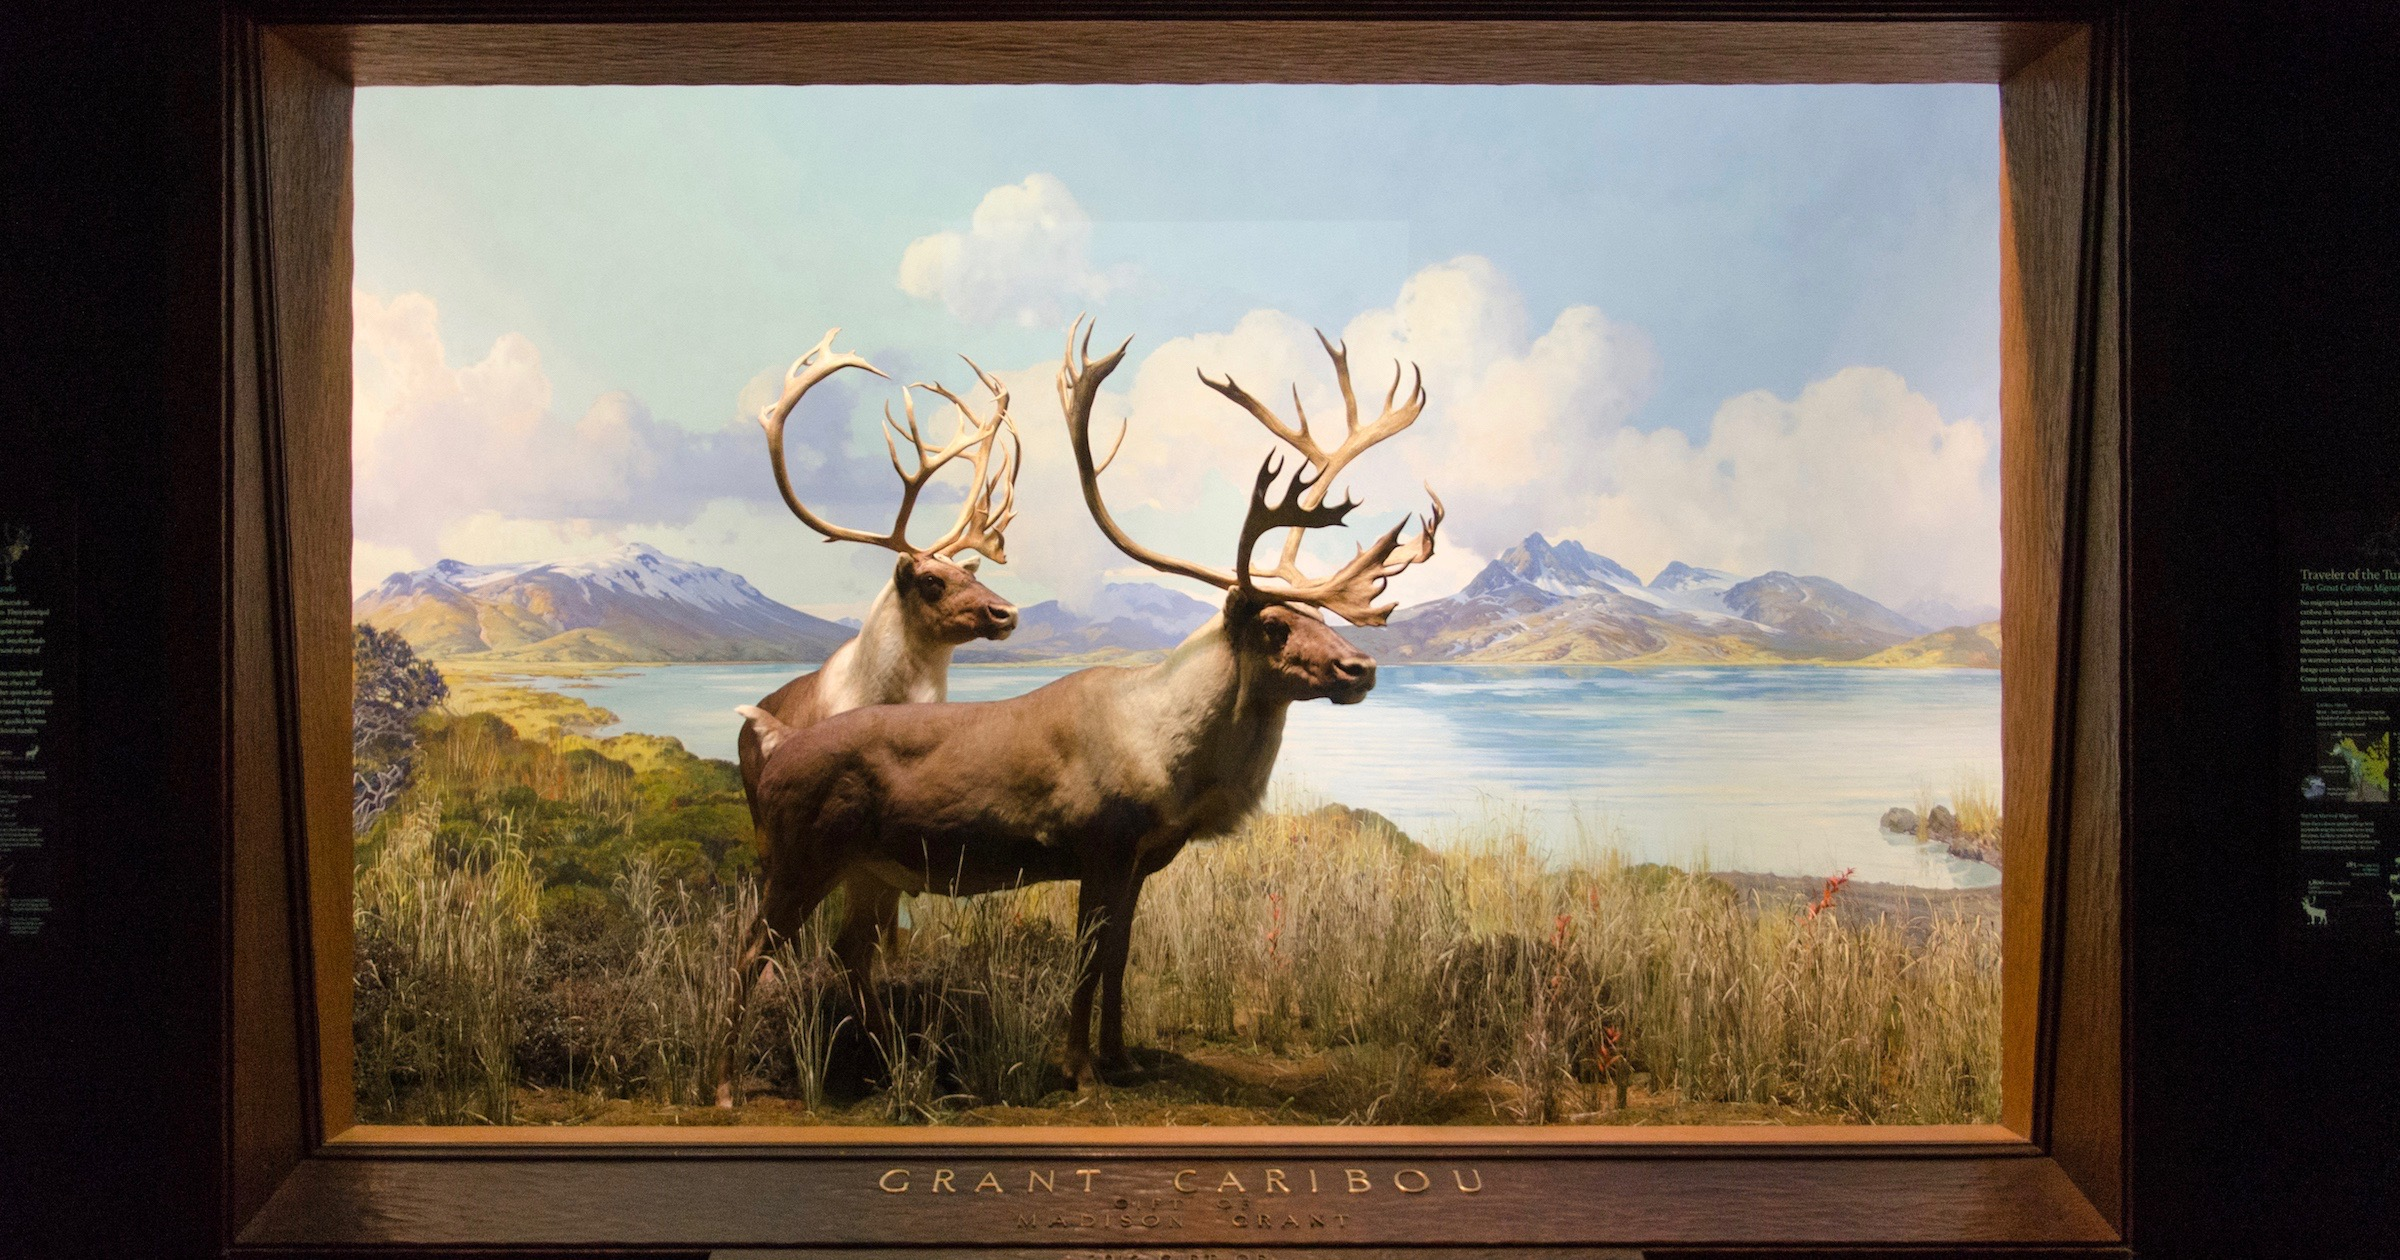 Cancel Caribou? Another Questionable Tribute at the American Museum of Natural History